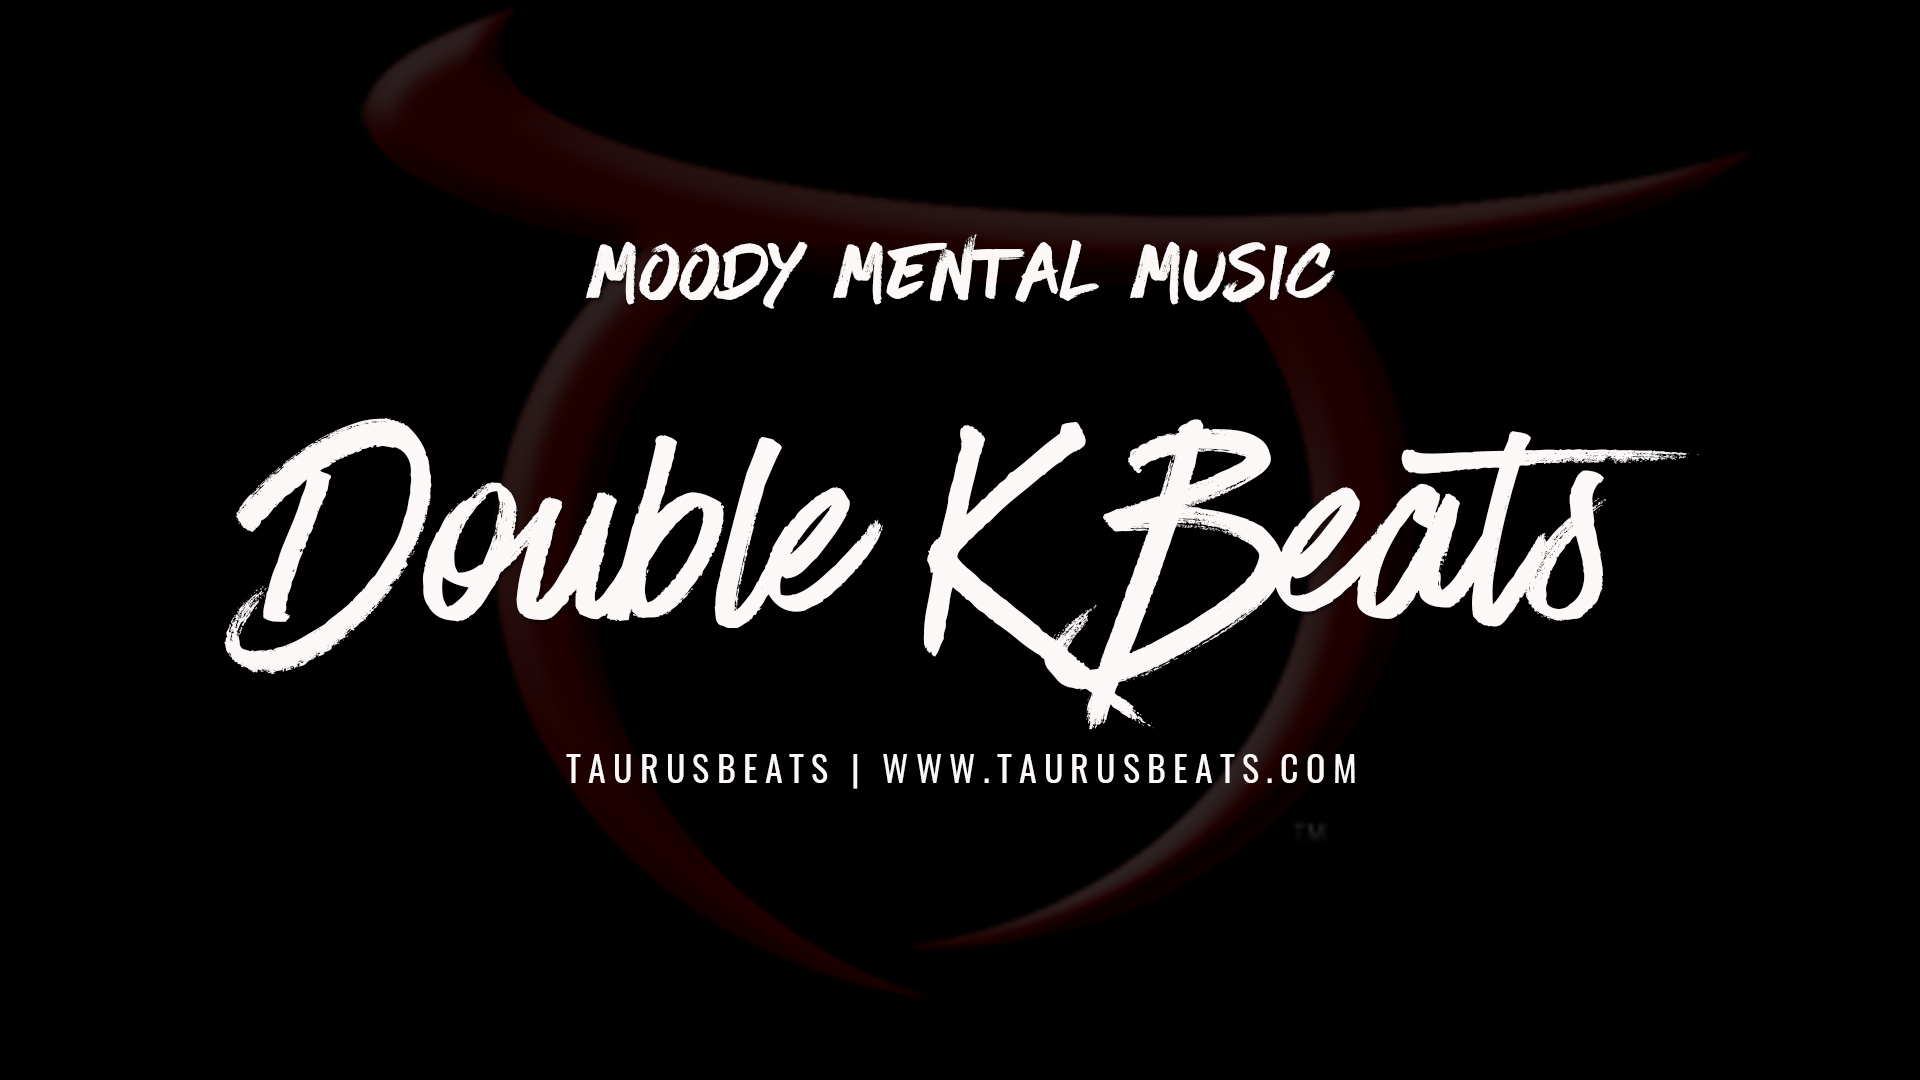 image for Double K Beats (2006)